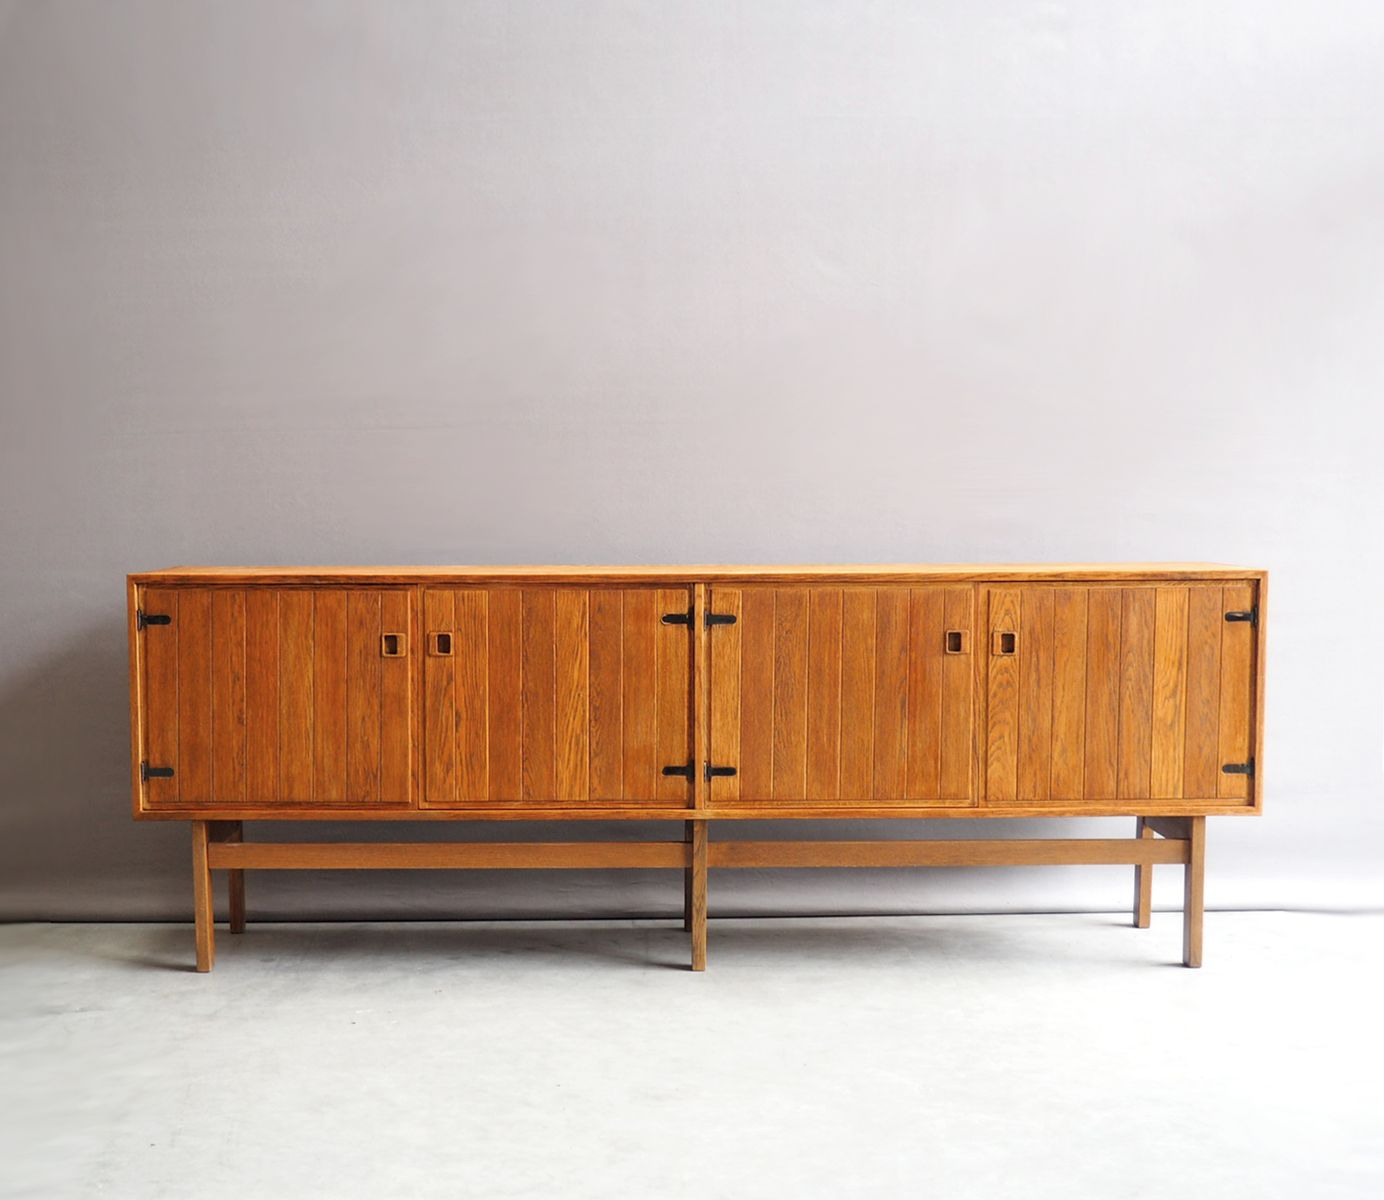 gro es d nisches eichenholz sideboard 1960er bei pamono kaufen. Black Bedroom Furniture Sets. Home Design Ideas